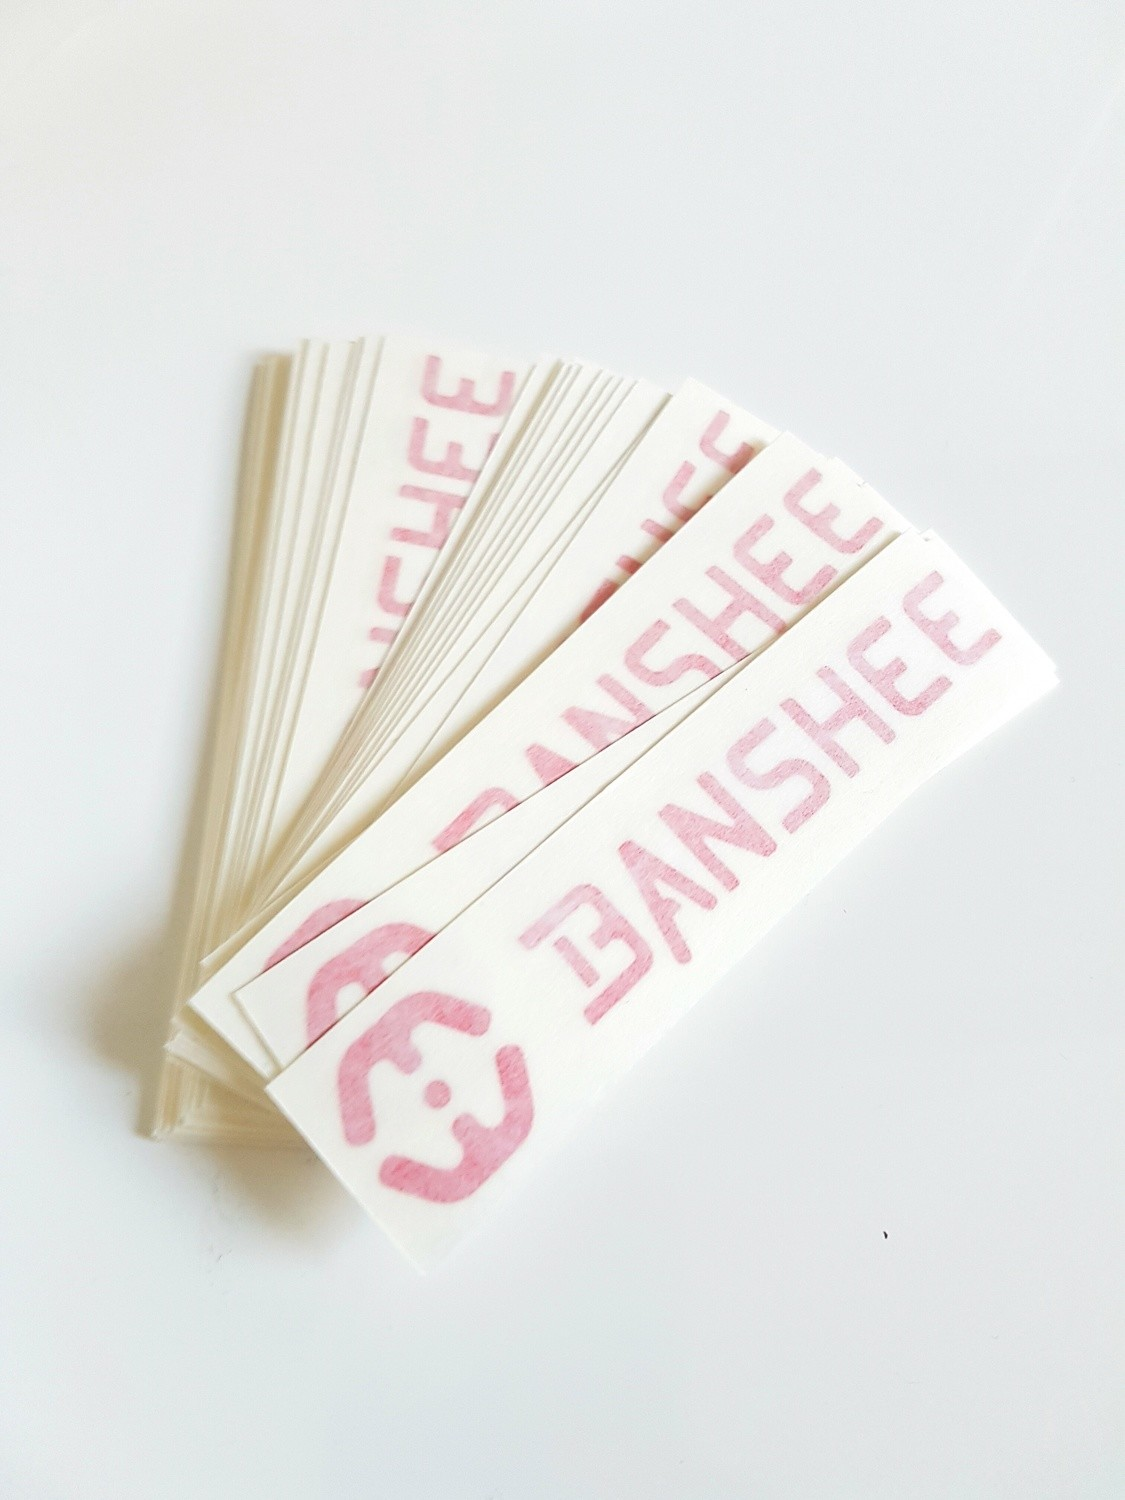 Banshee Vinyl stickers (100x22mm)